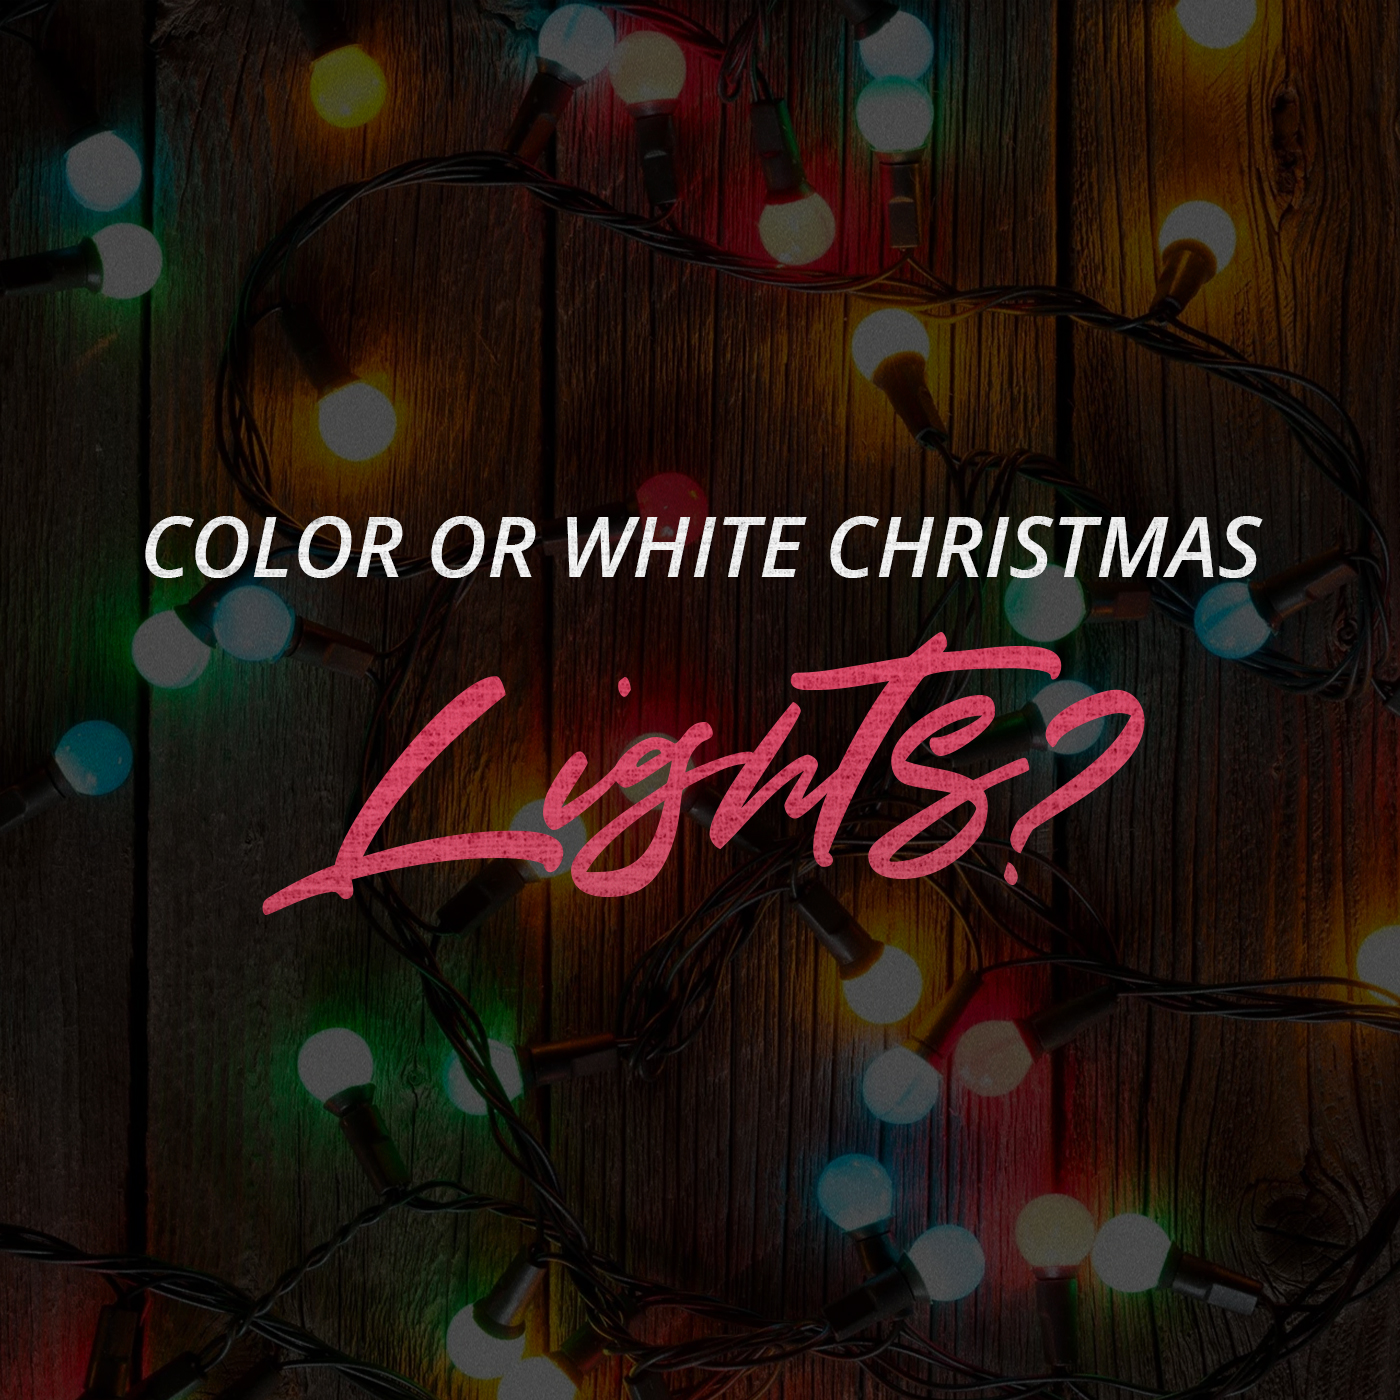 Color or White Christmas Lights?